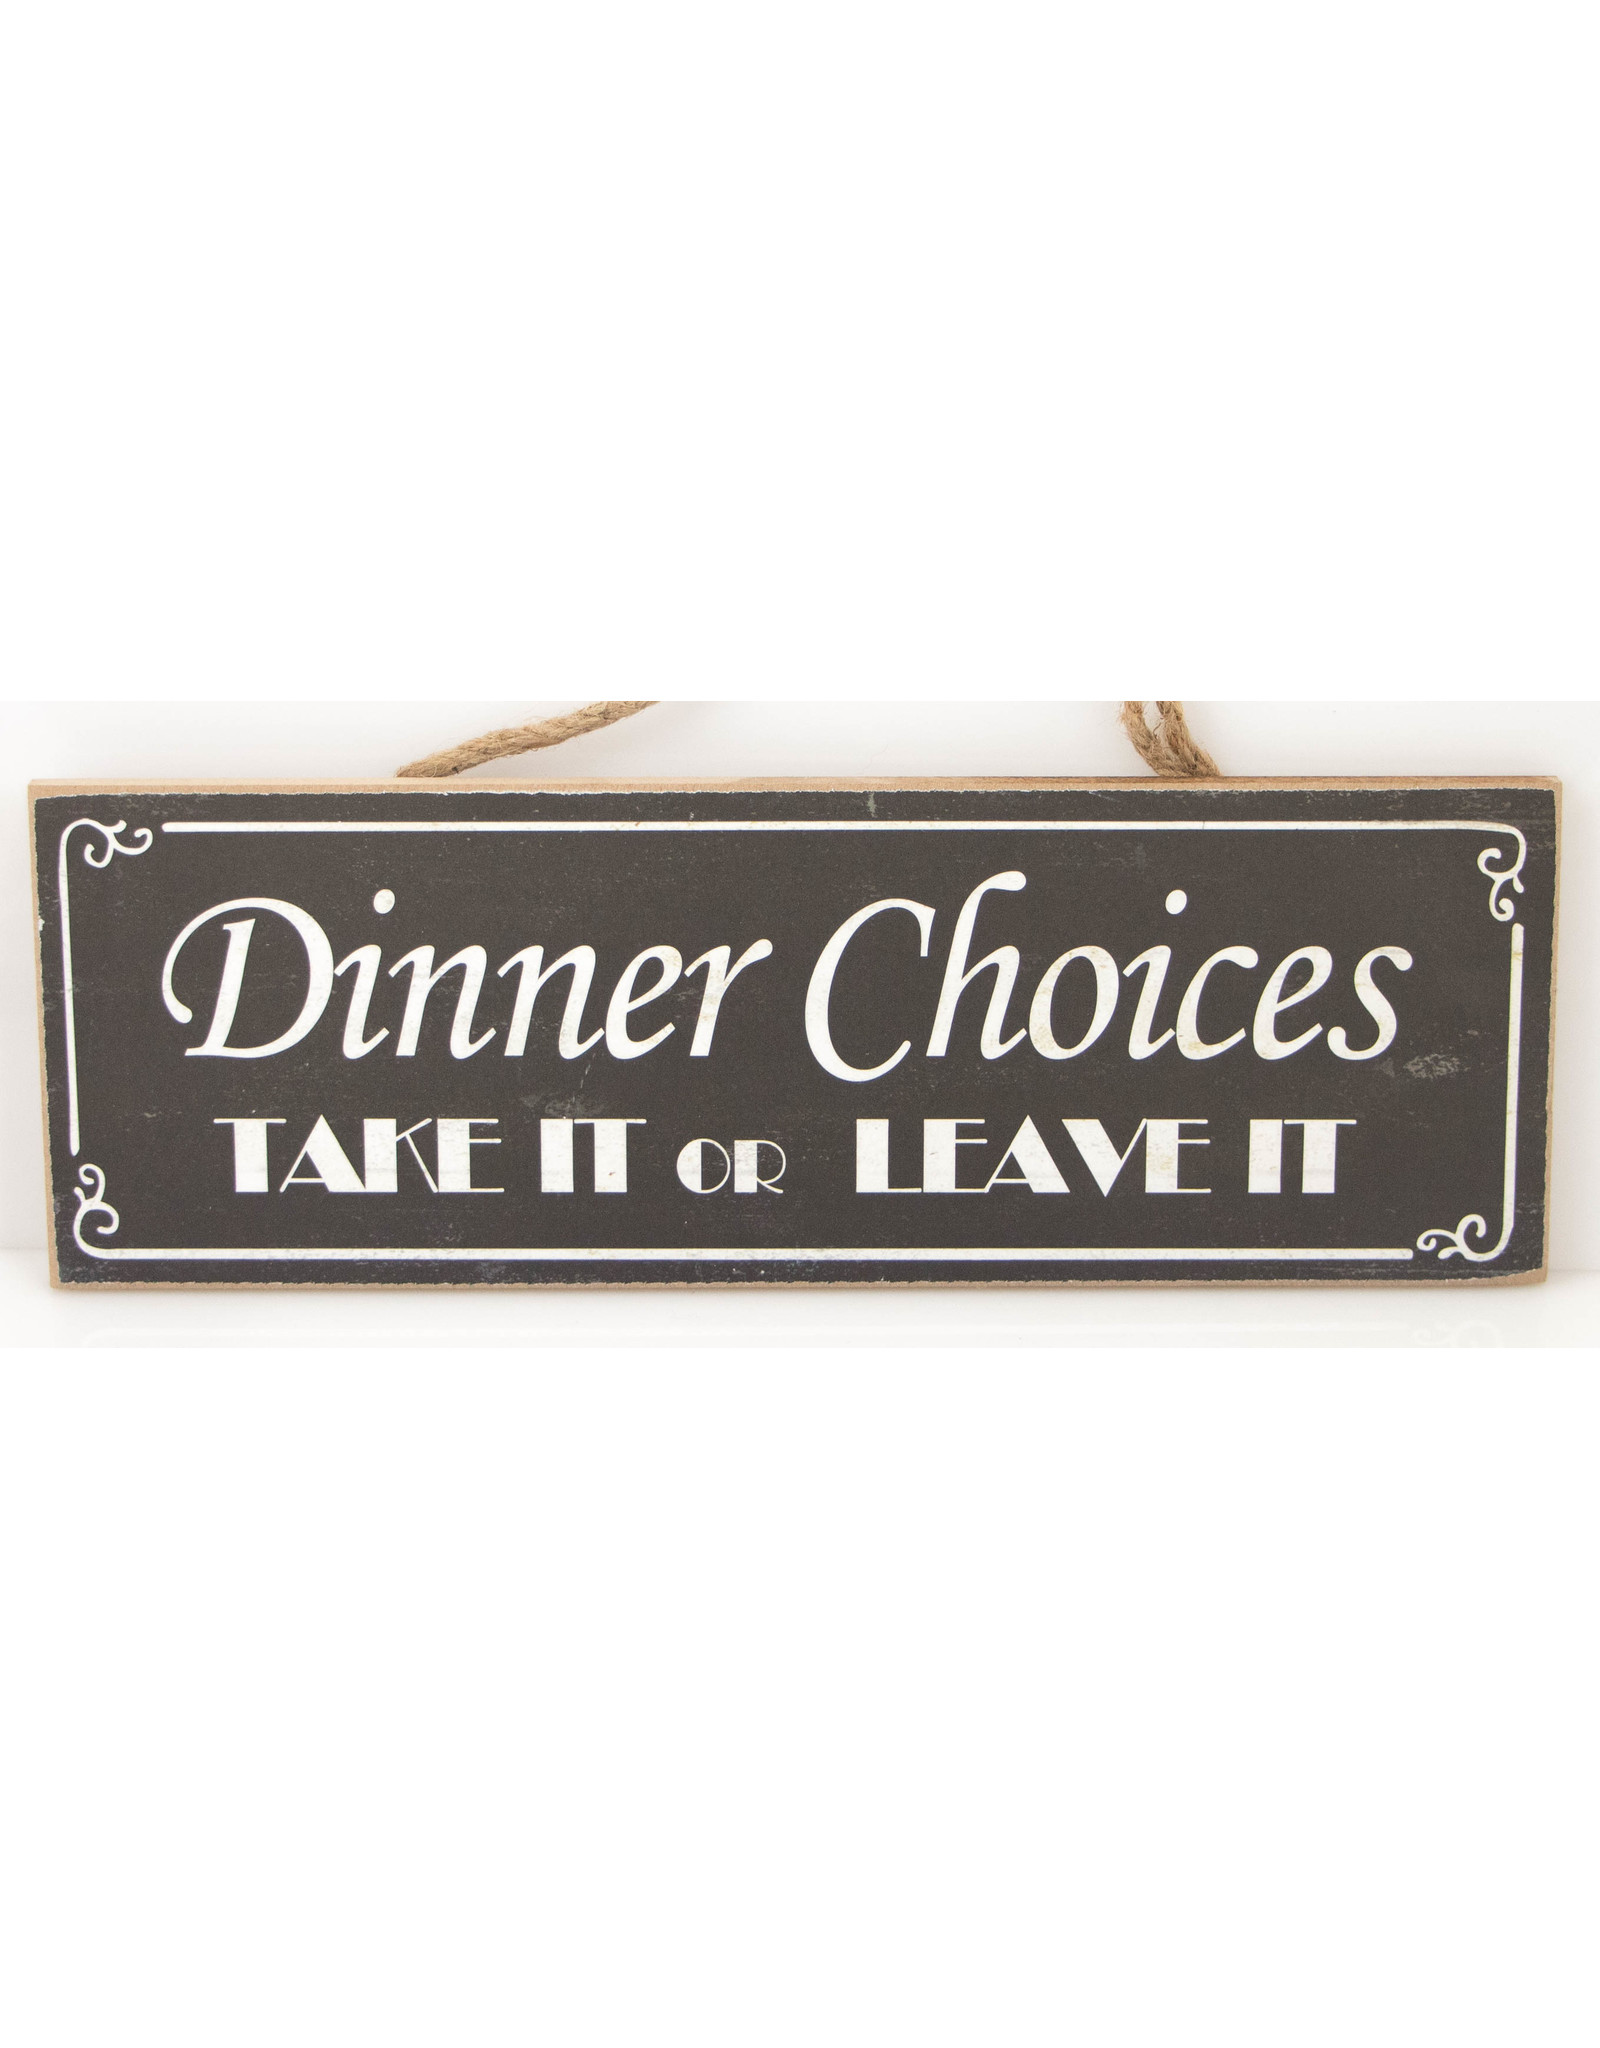 Diner choices : Take it or Leave it